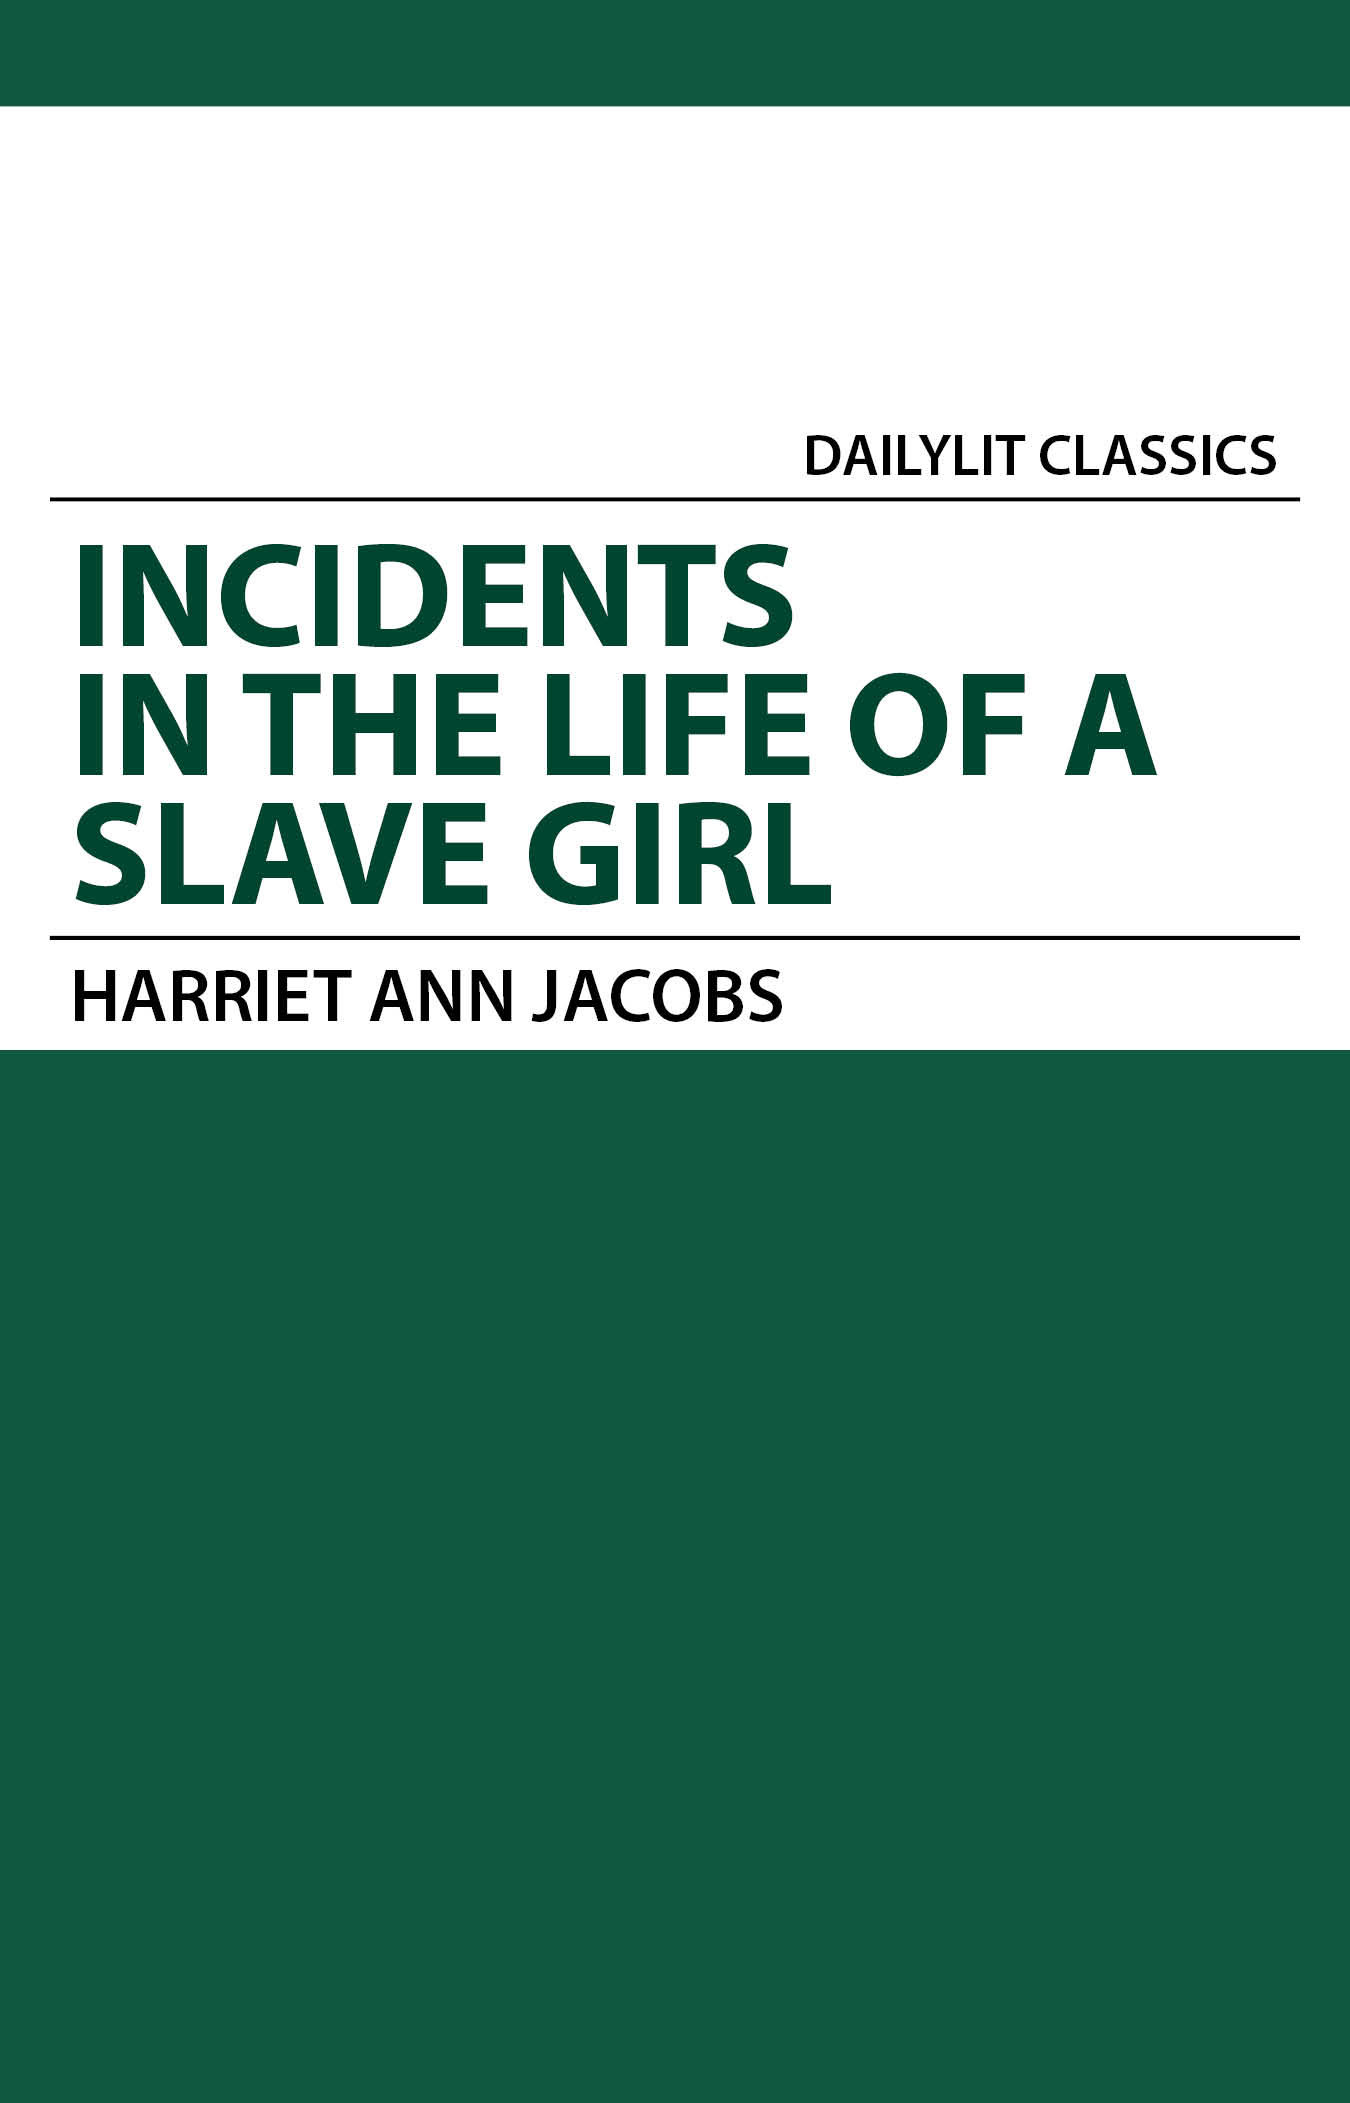 slouching towards bethlehem by joan didion cover of incidents in the life of a slave girl